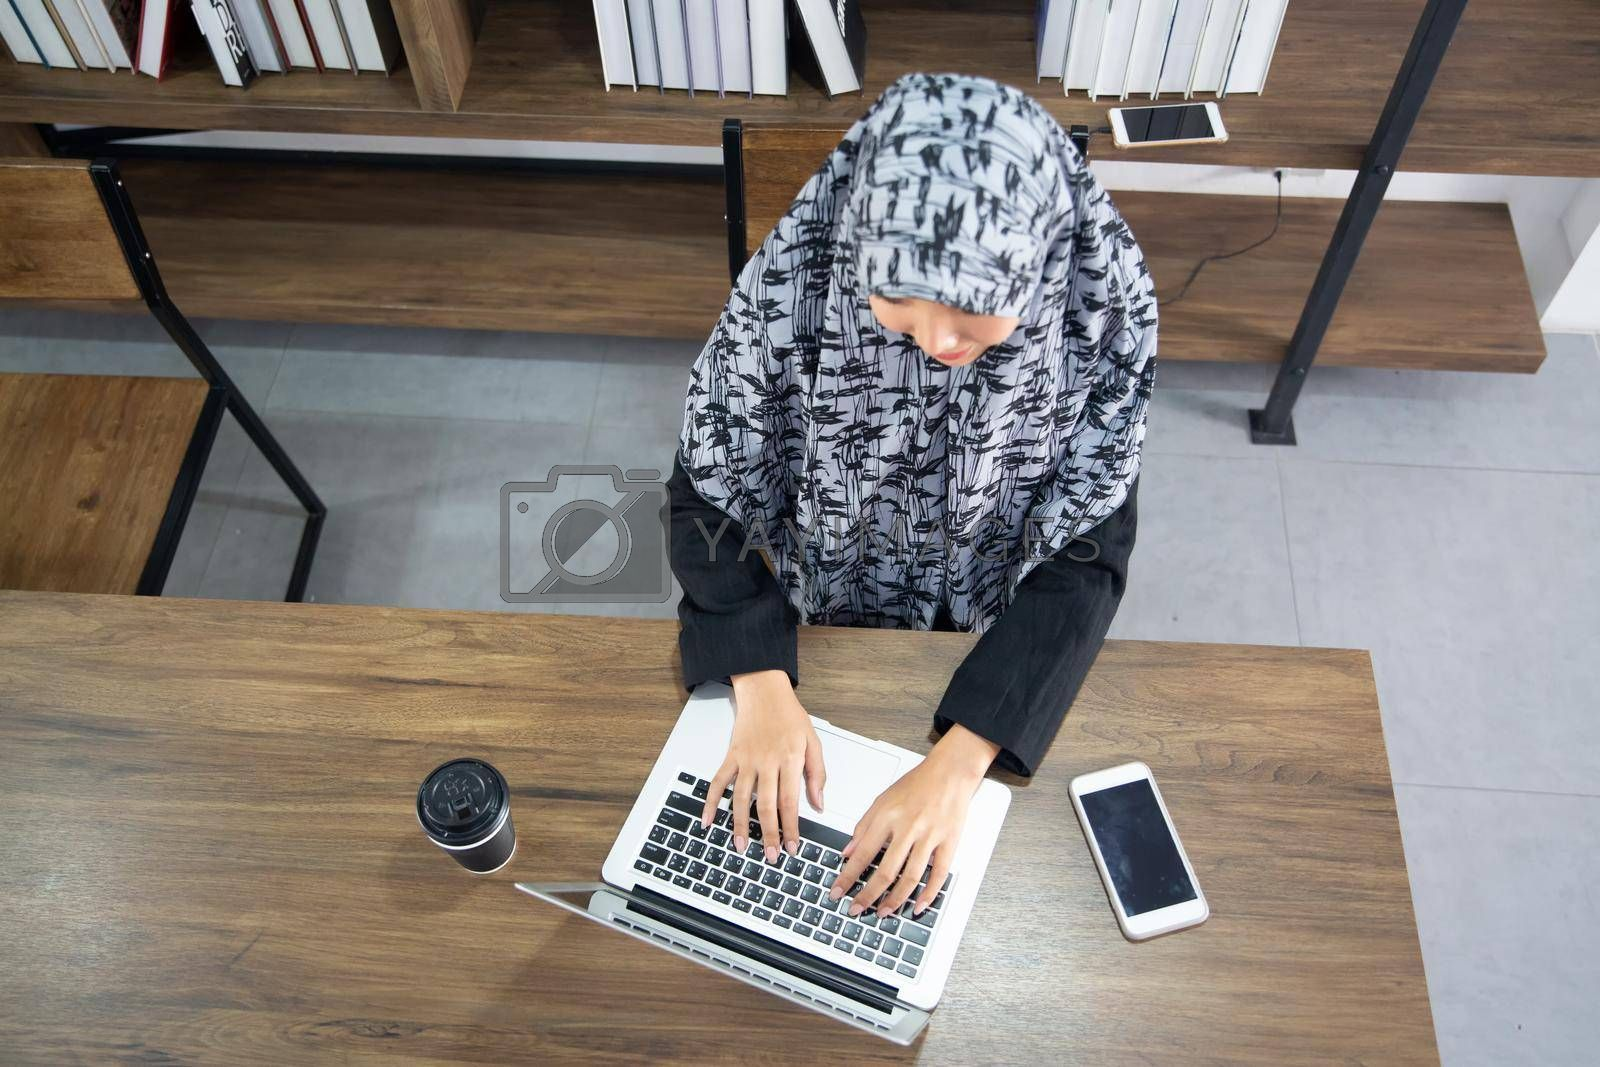 Royalty free image of young Muslim woman using a laptop in a modern office by chuanchai